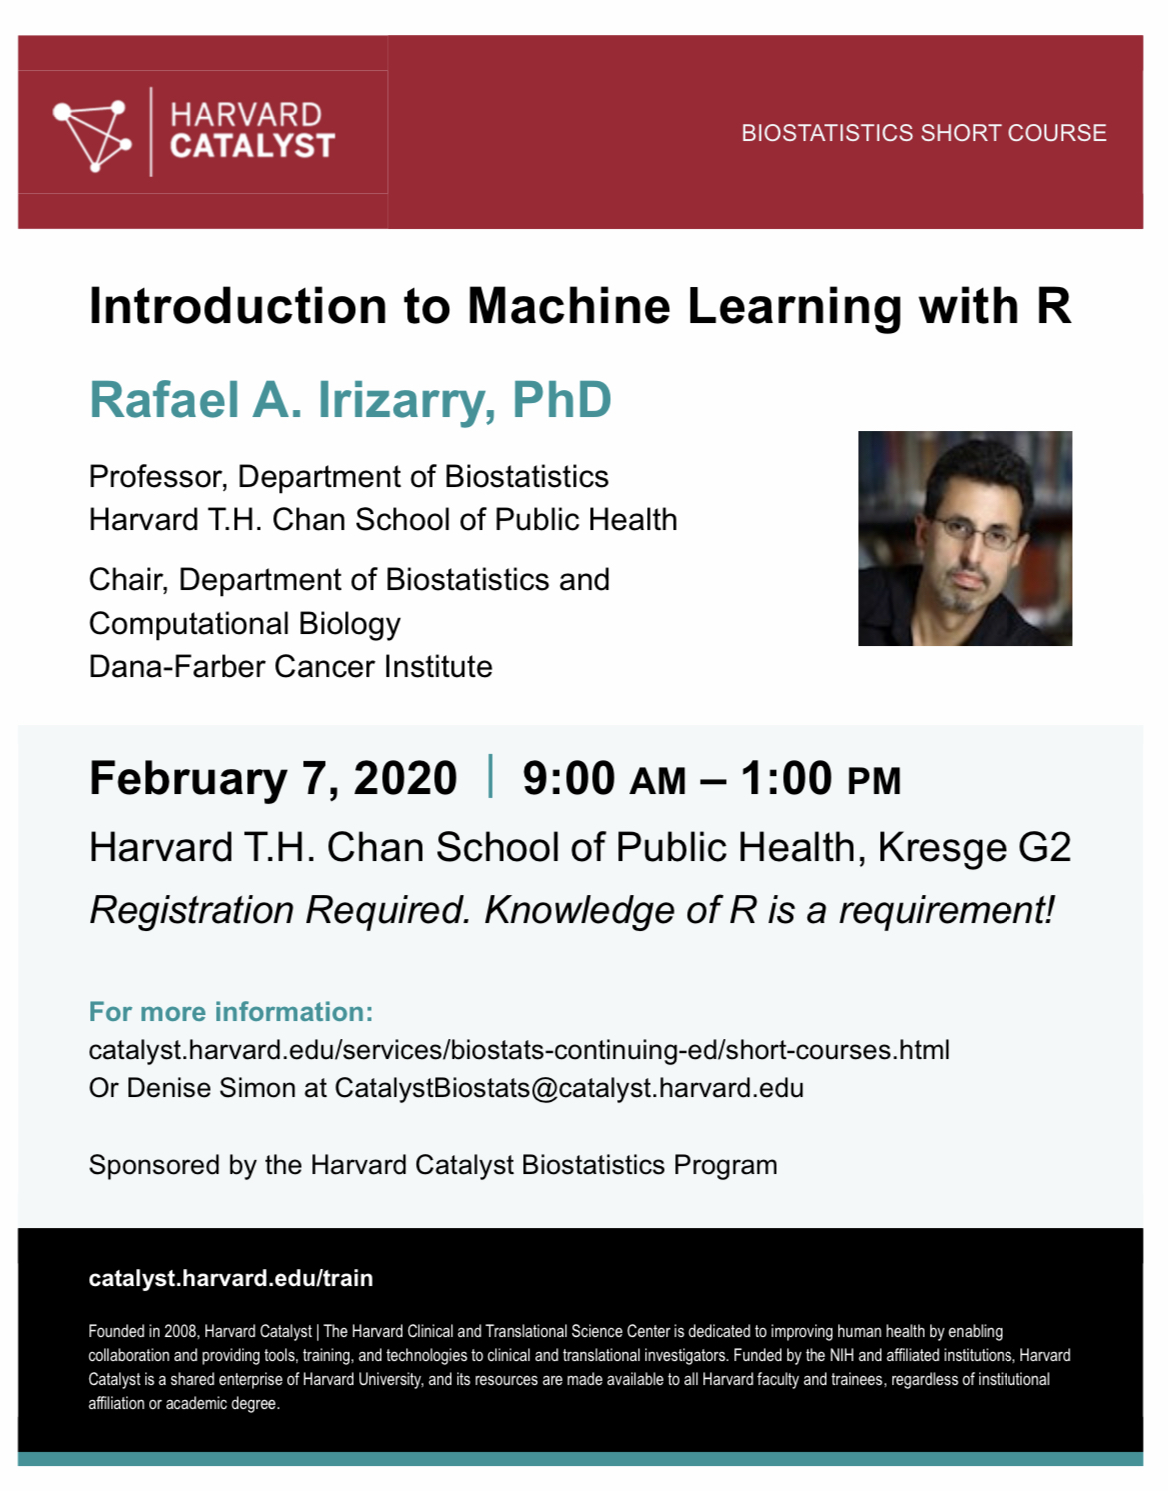 Machine Learning with Rafael Irizarry